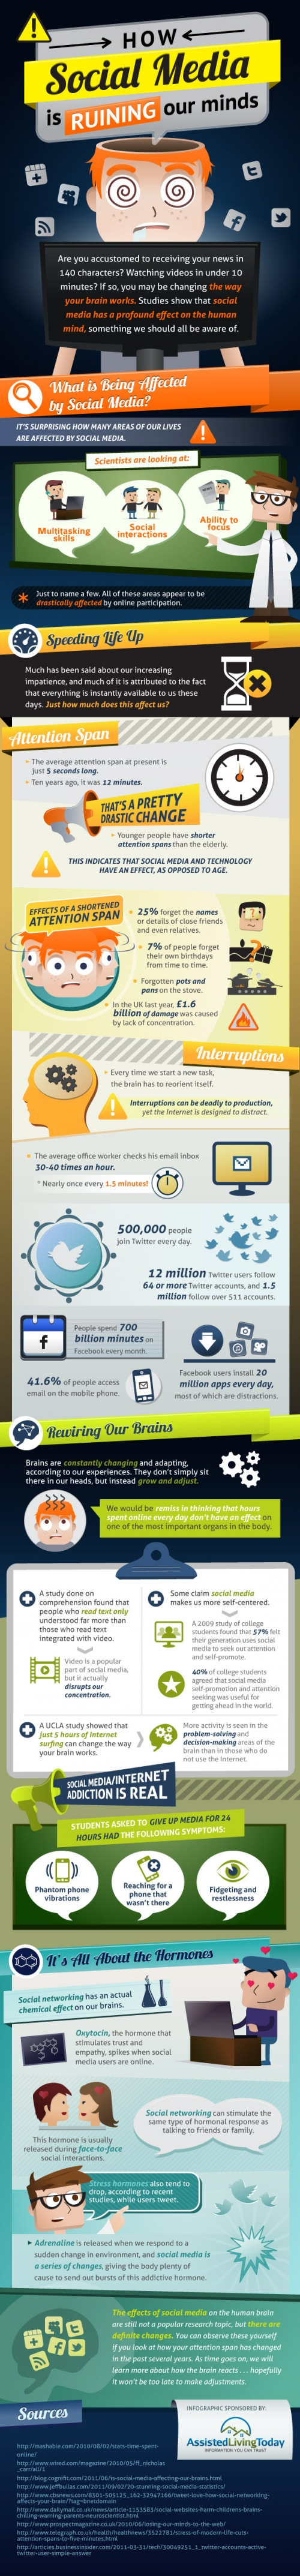 Social Media Minds How Social Media is Ruining Our Minds   Infographic